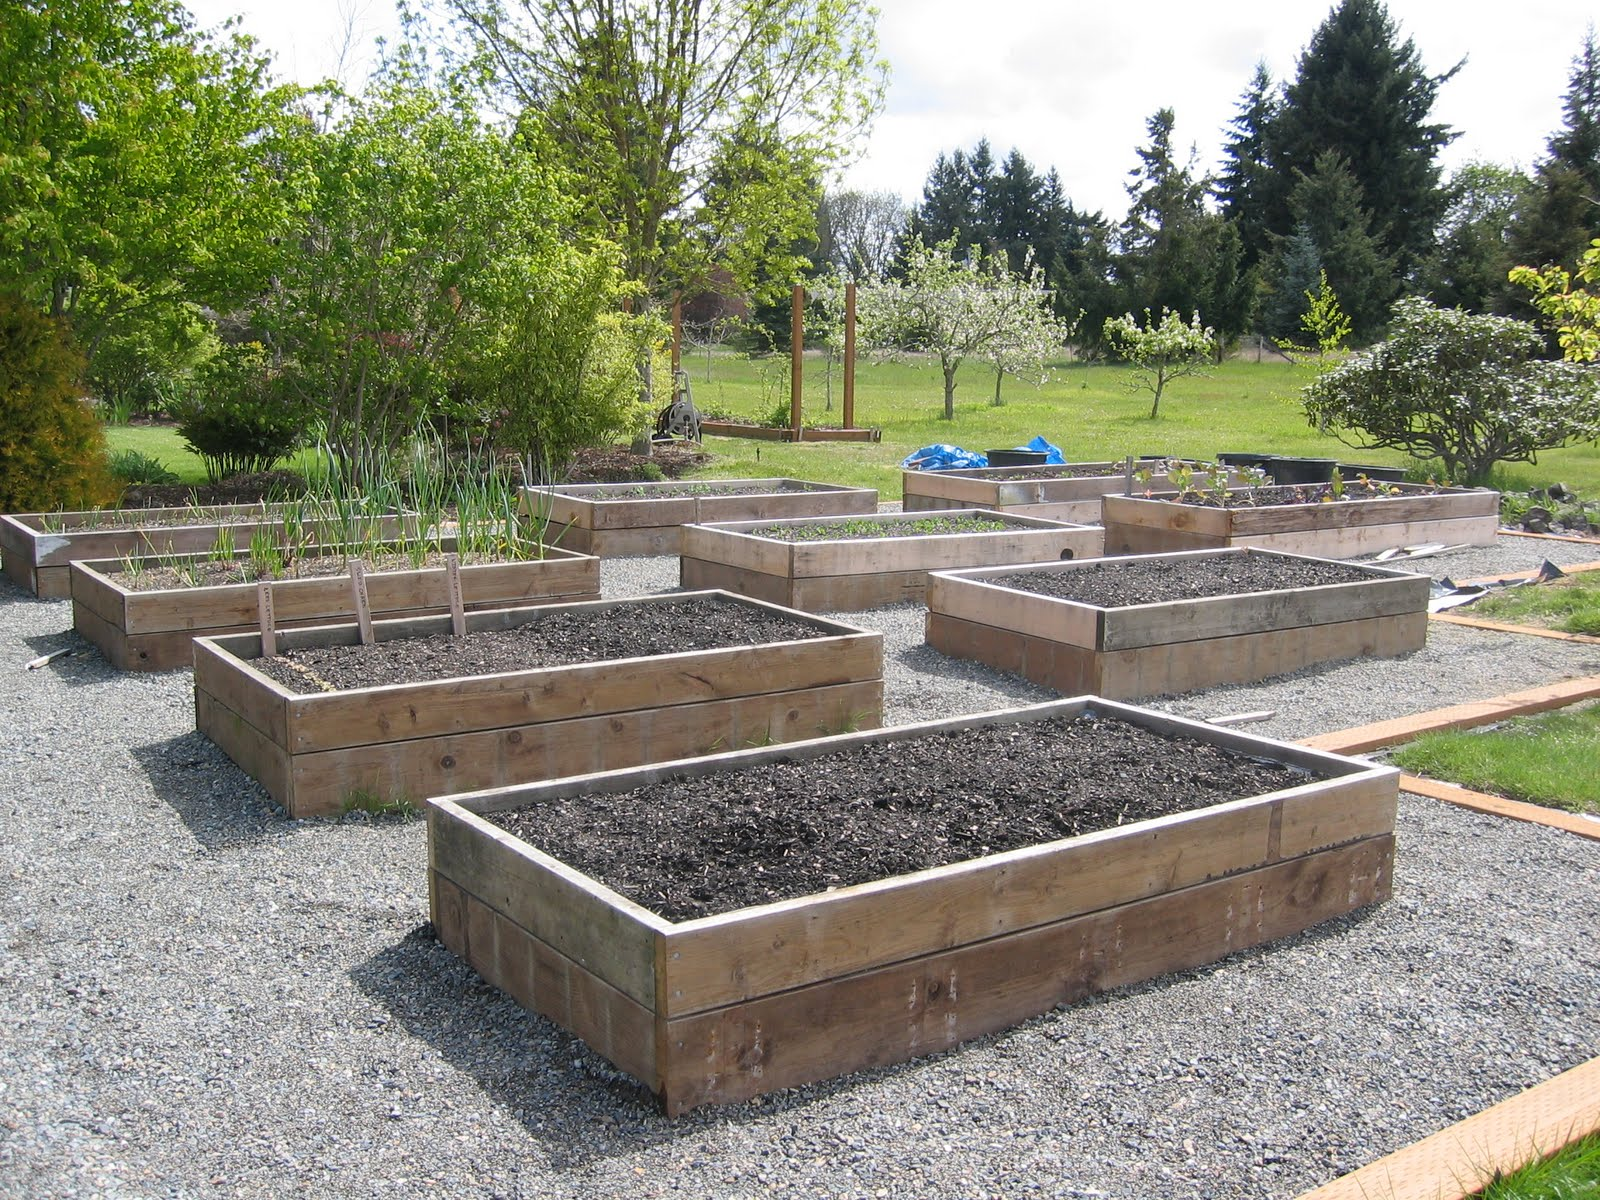 The tacoma kitchen garden journal raised vegetable beds for Garden bed design ideas